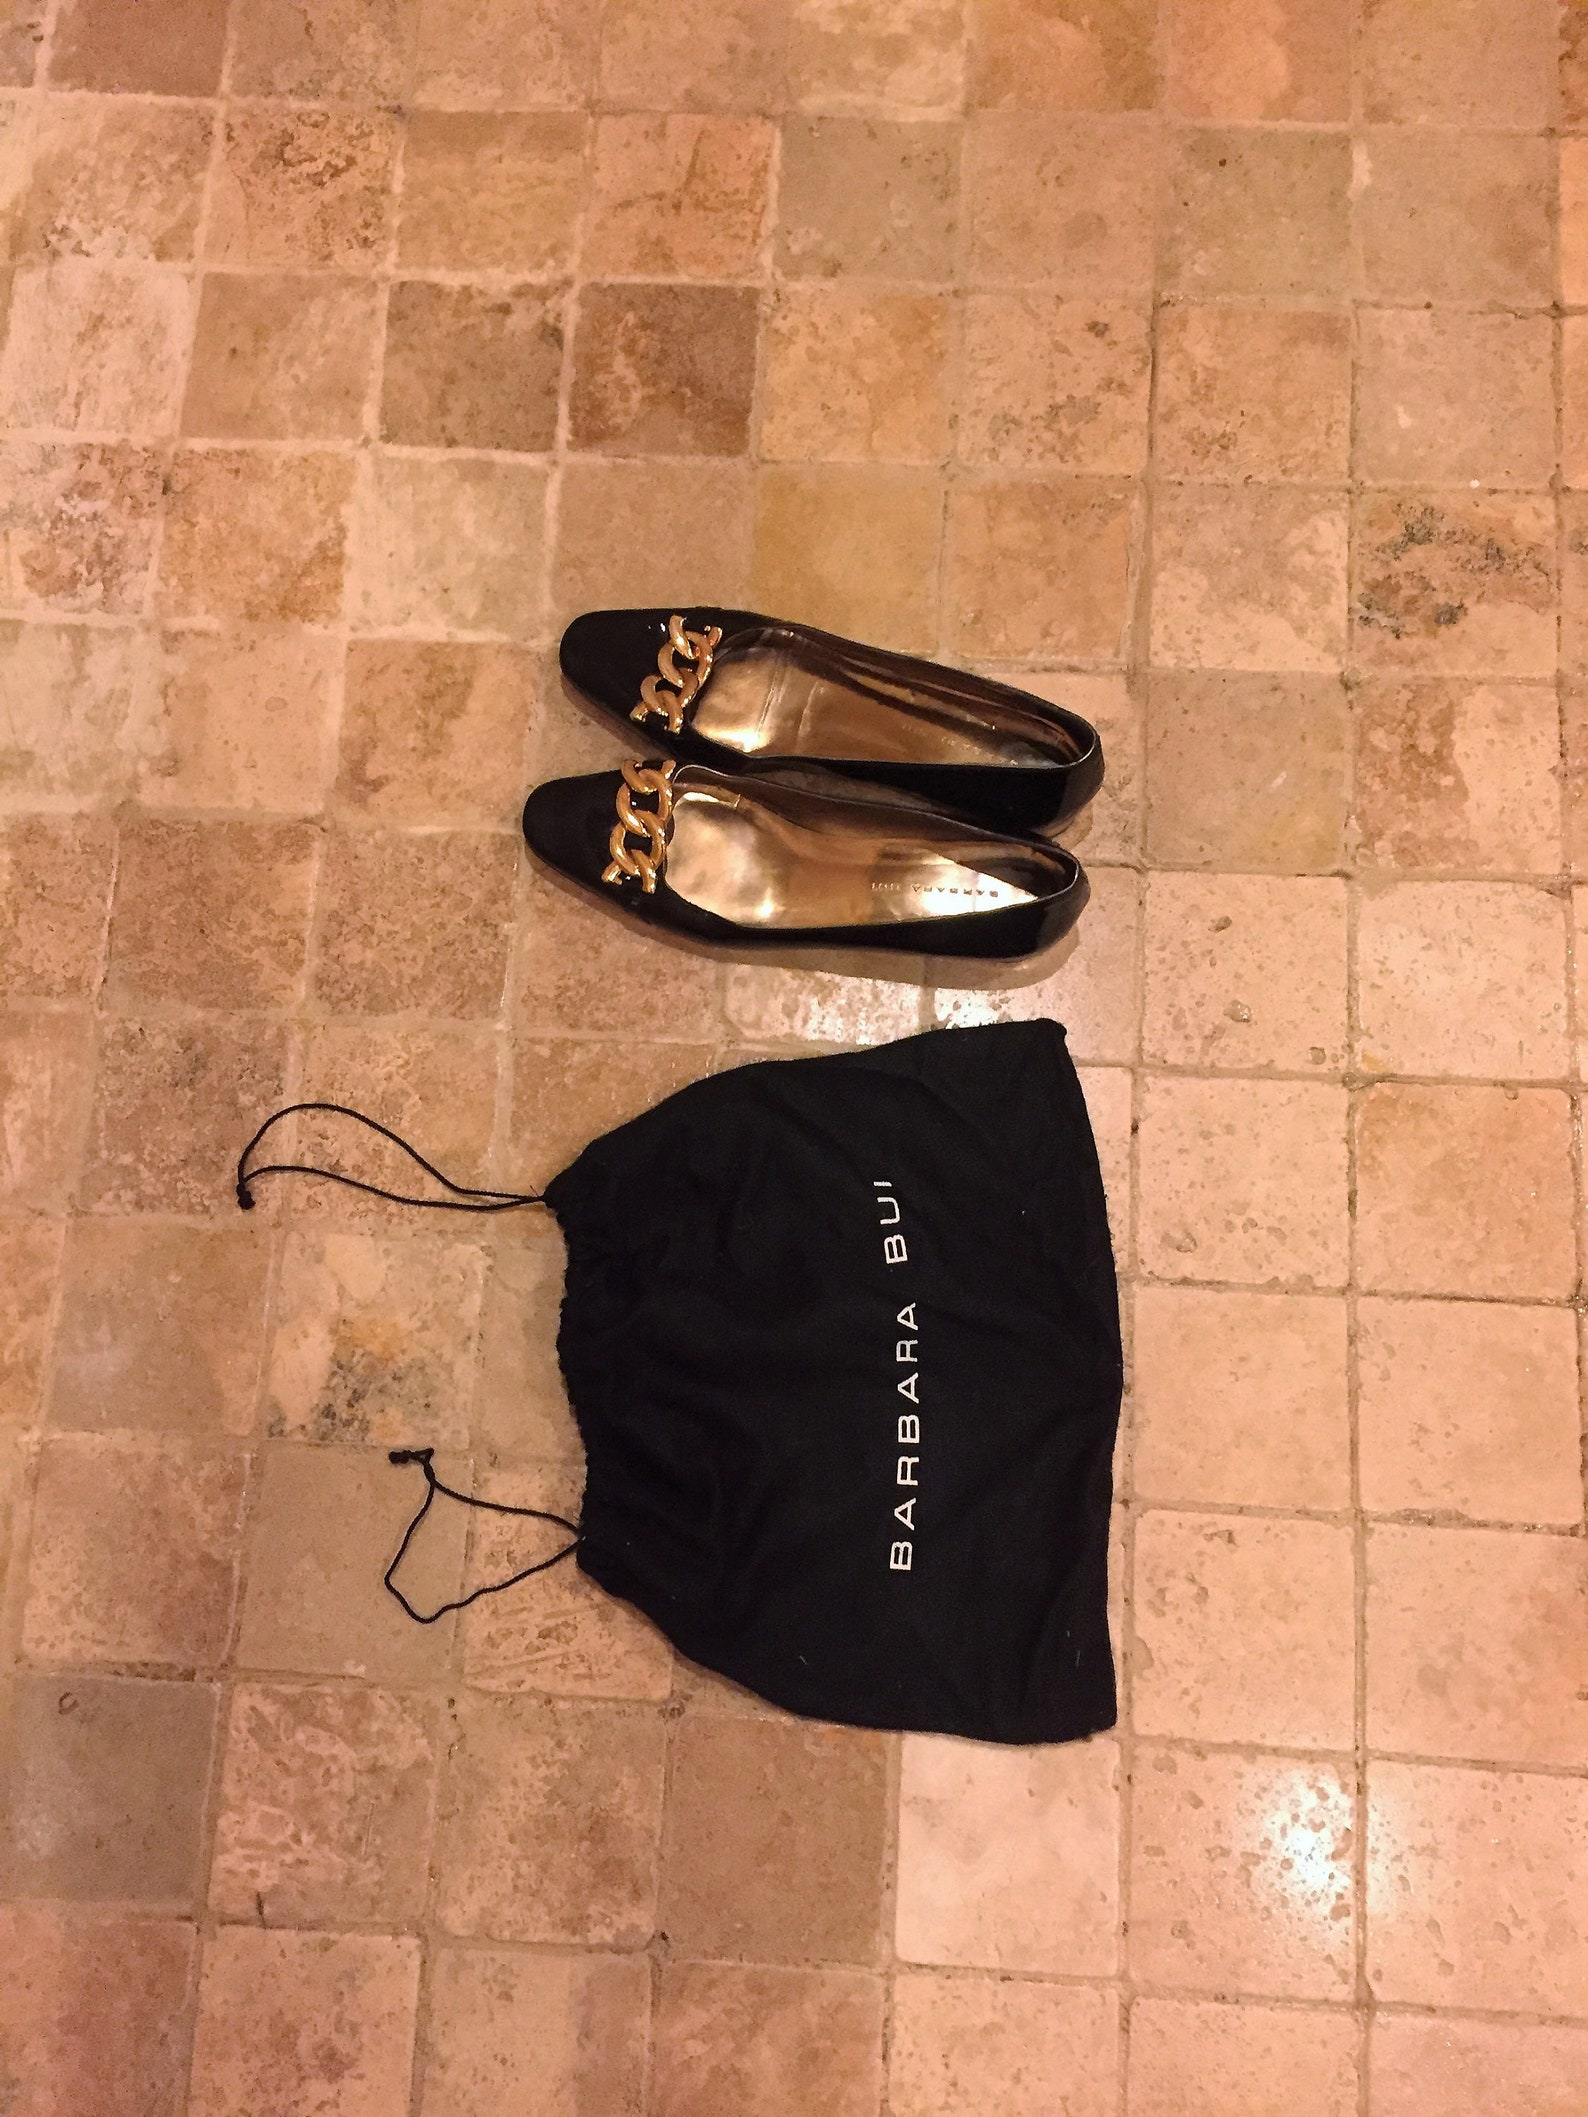 ballerina shoes barbara bui vintage patent leather black ballet shoes with a gold chain